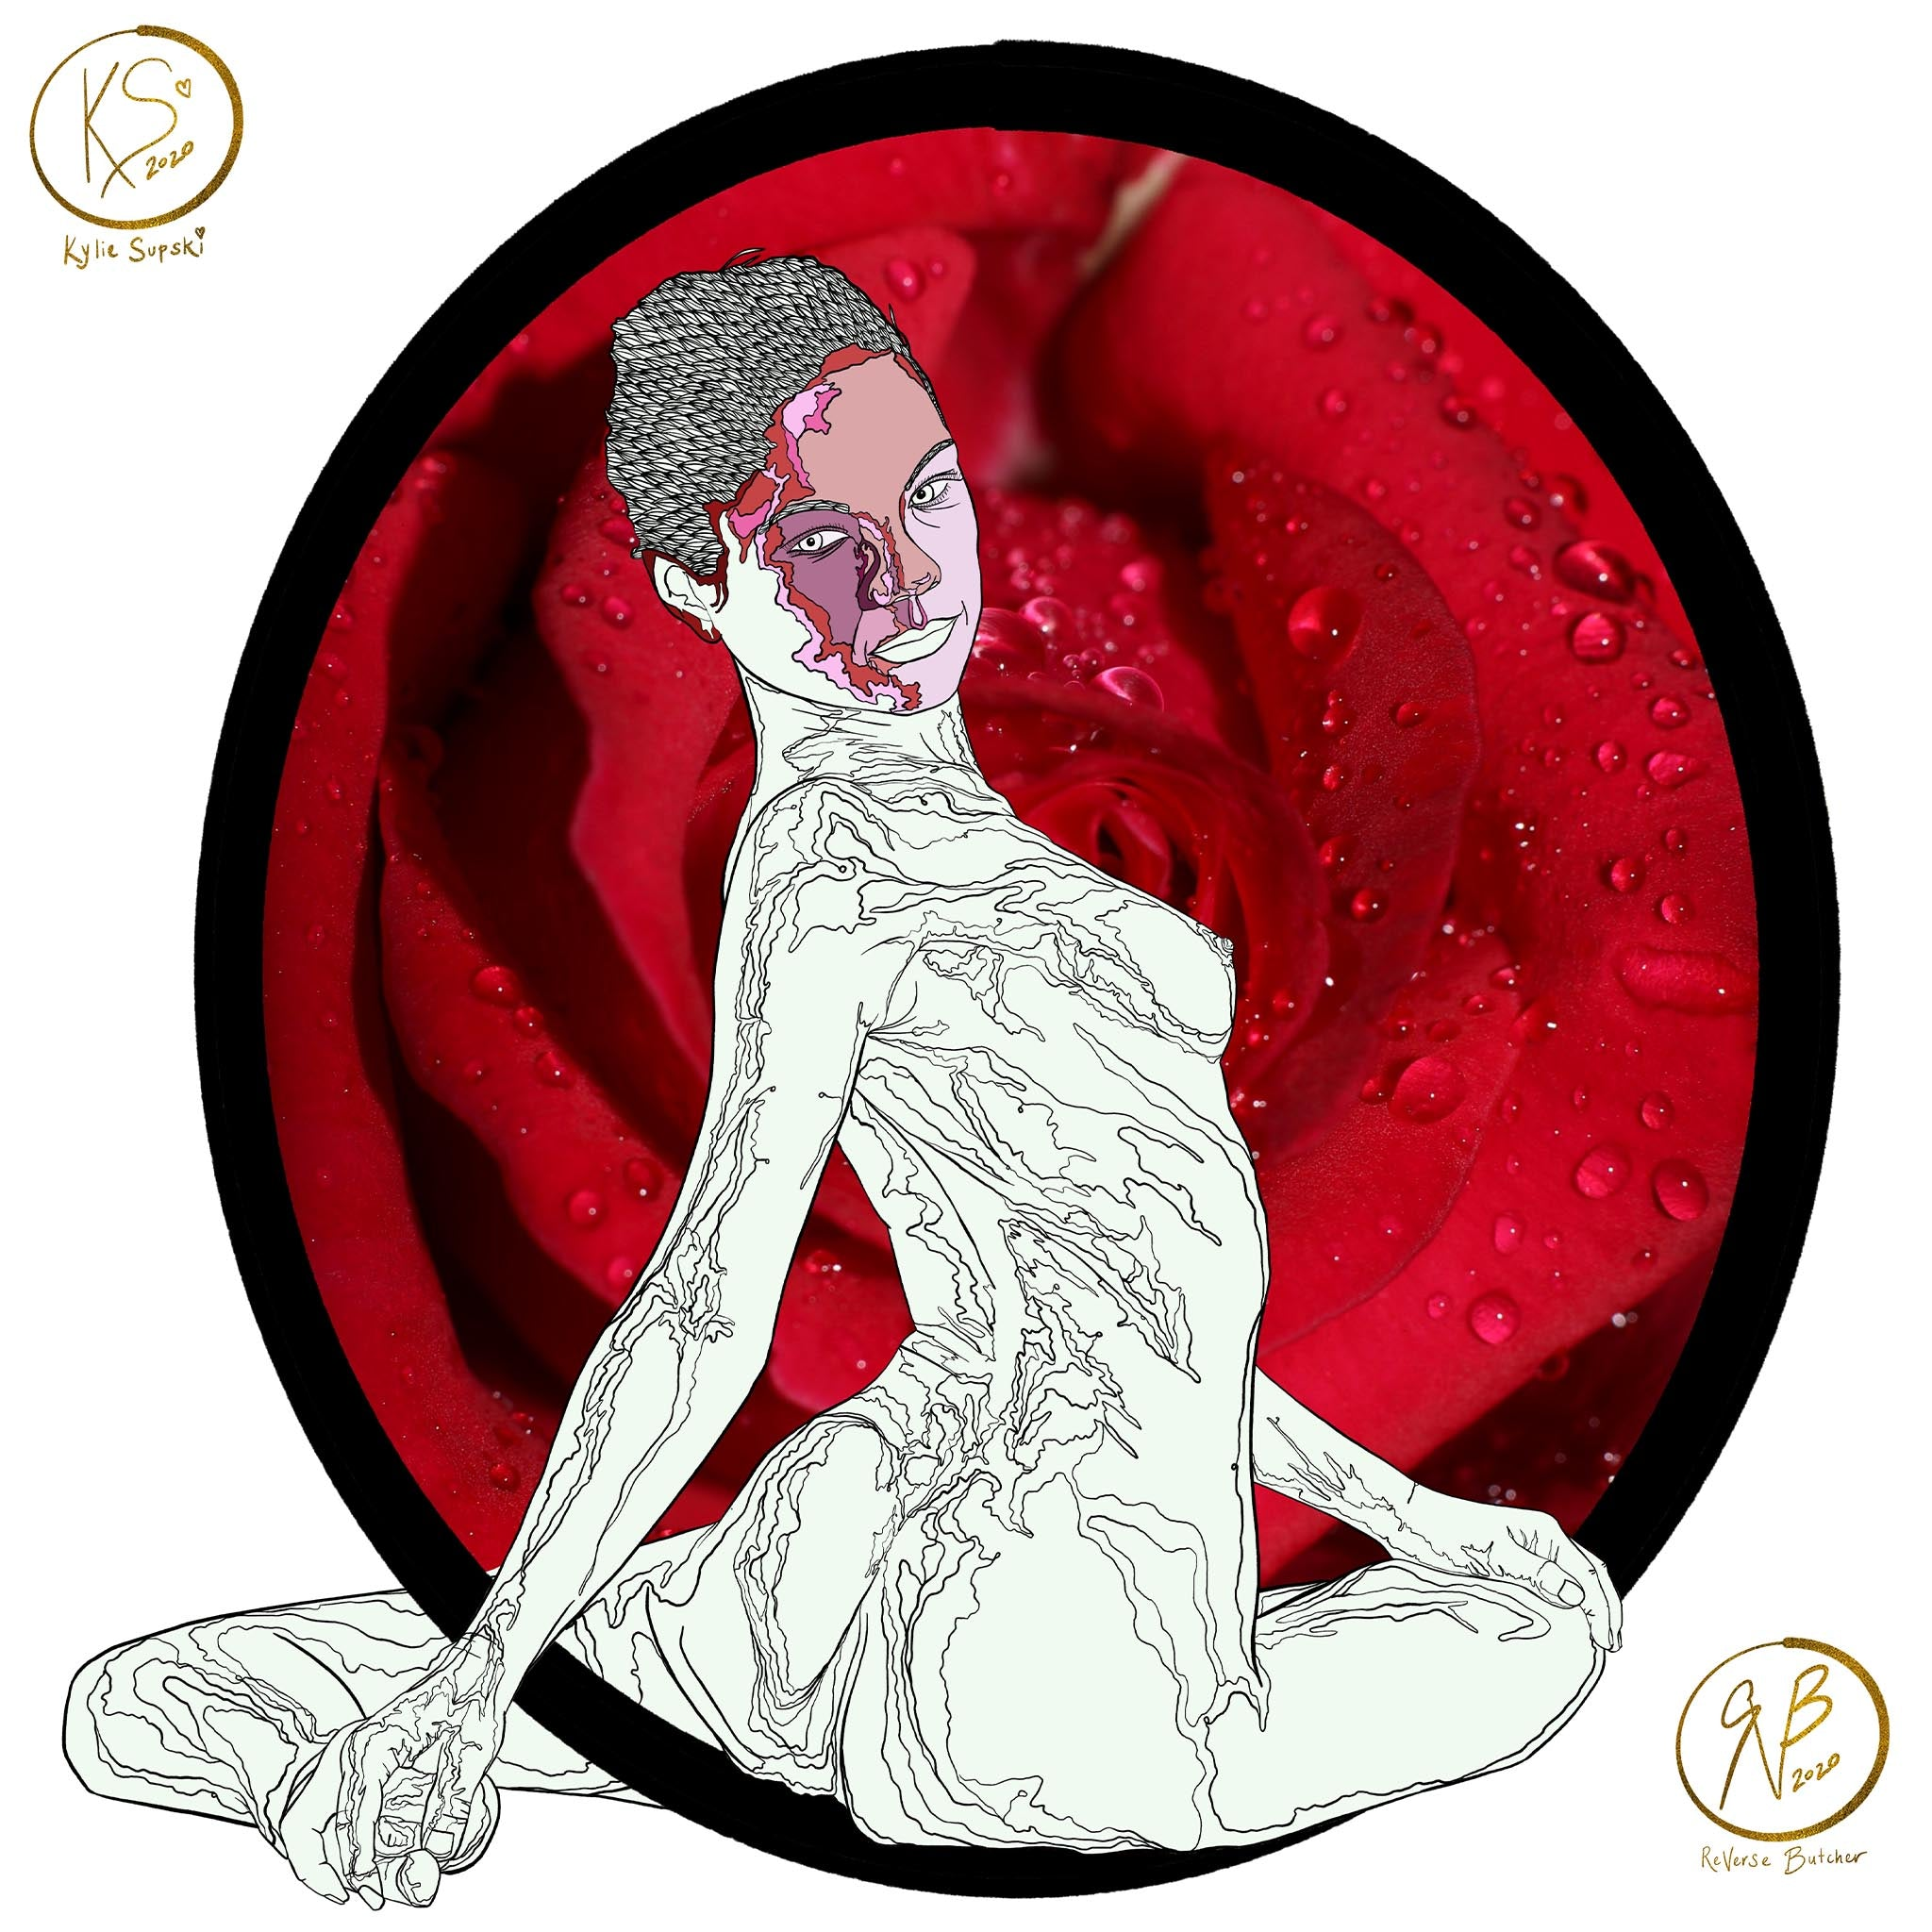 Circle Series: Feminine with Rose Tunnel | ReVerse Butcher & Kylie Supski | WIP 02